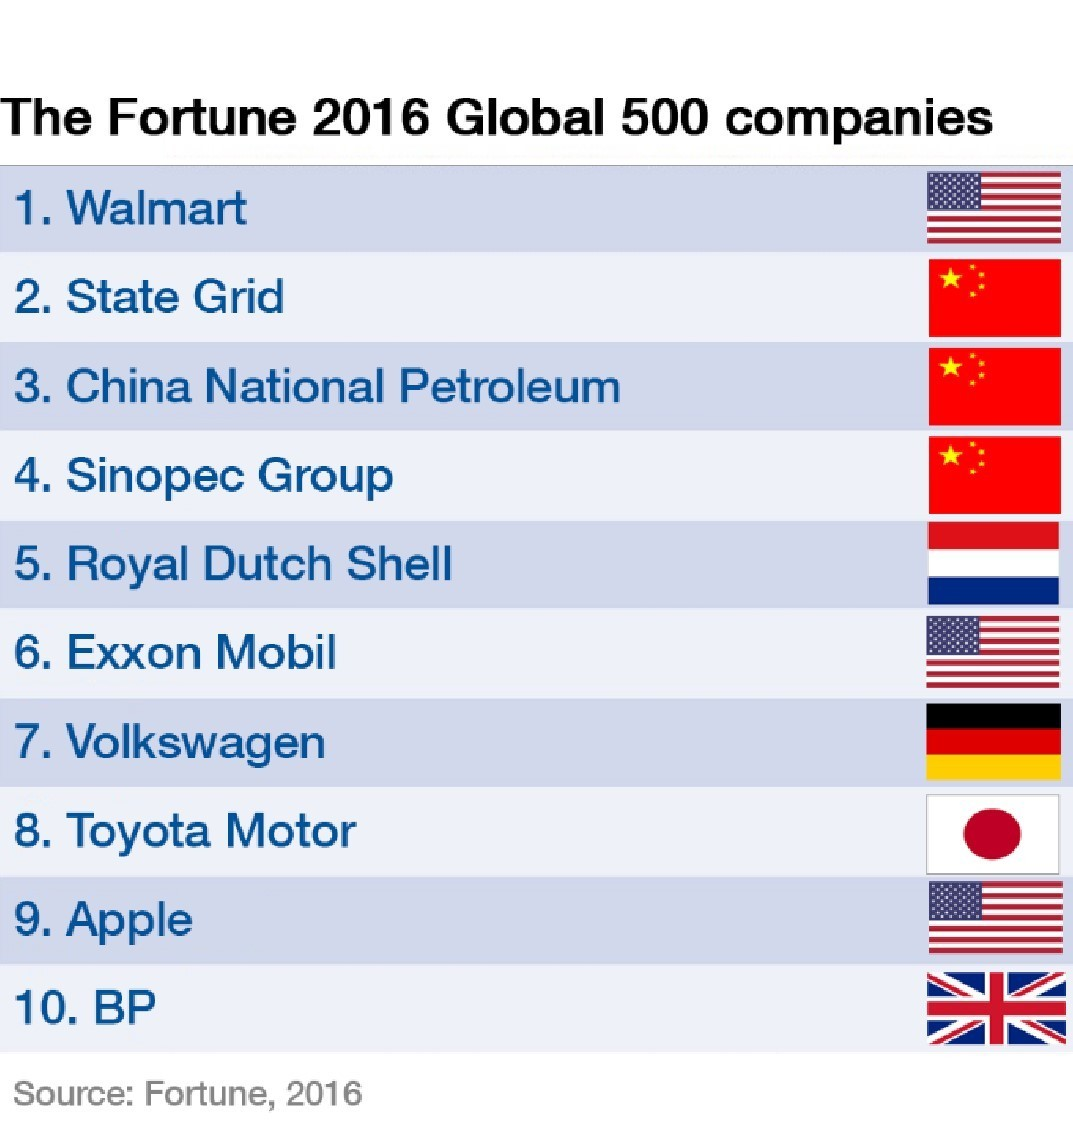 the new fortune global 500 is out. it shows a shift in the world's